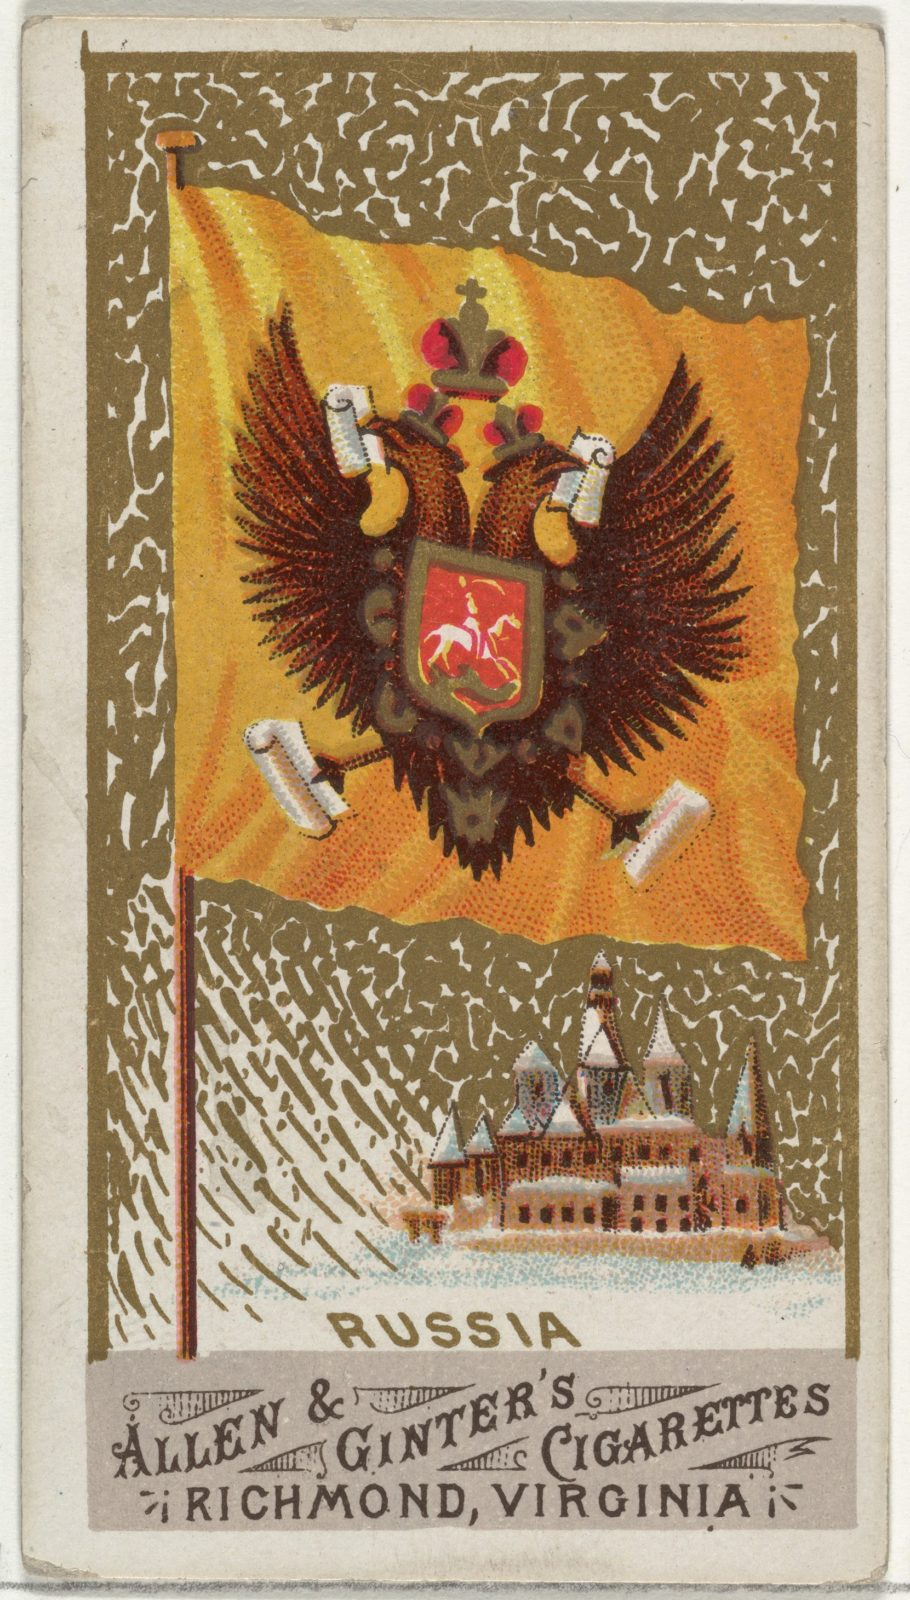 Russia, from Flags of All Nations, Series 1 (N9) for Allen & Ginter Cigarettes Brands